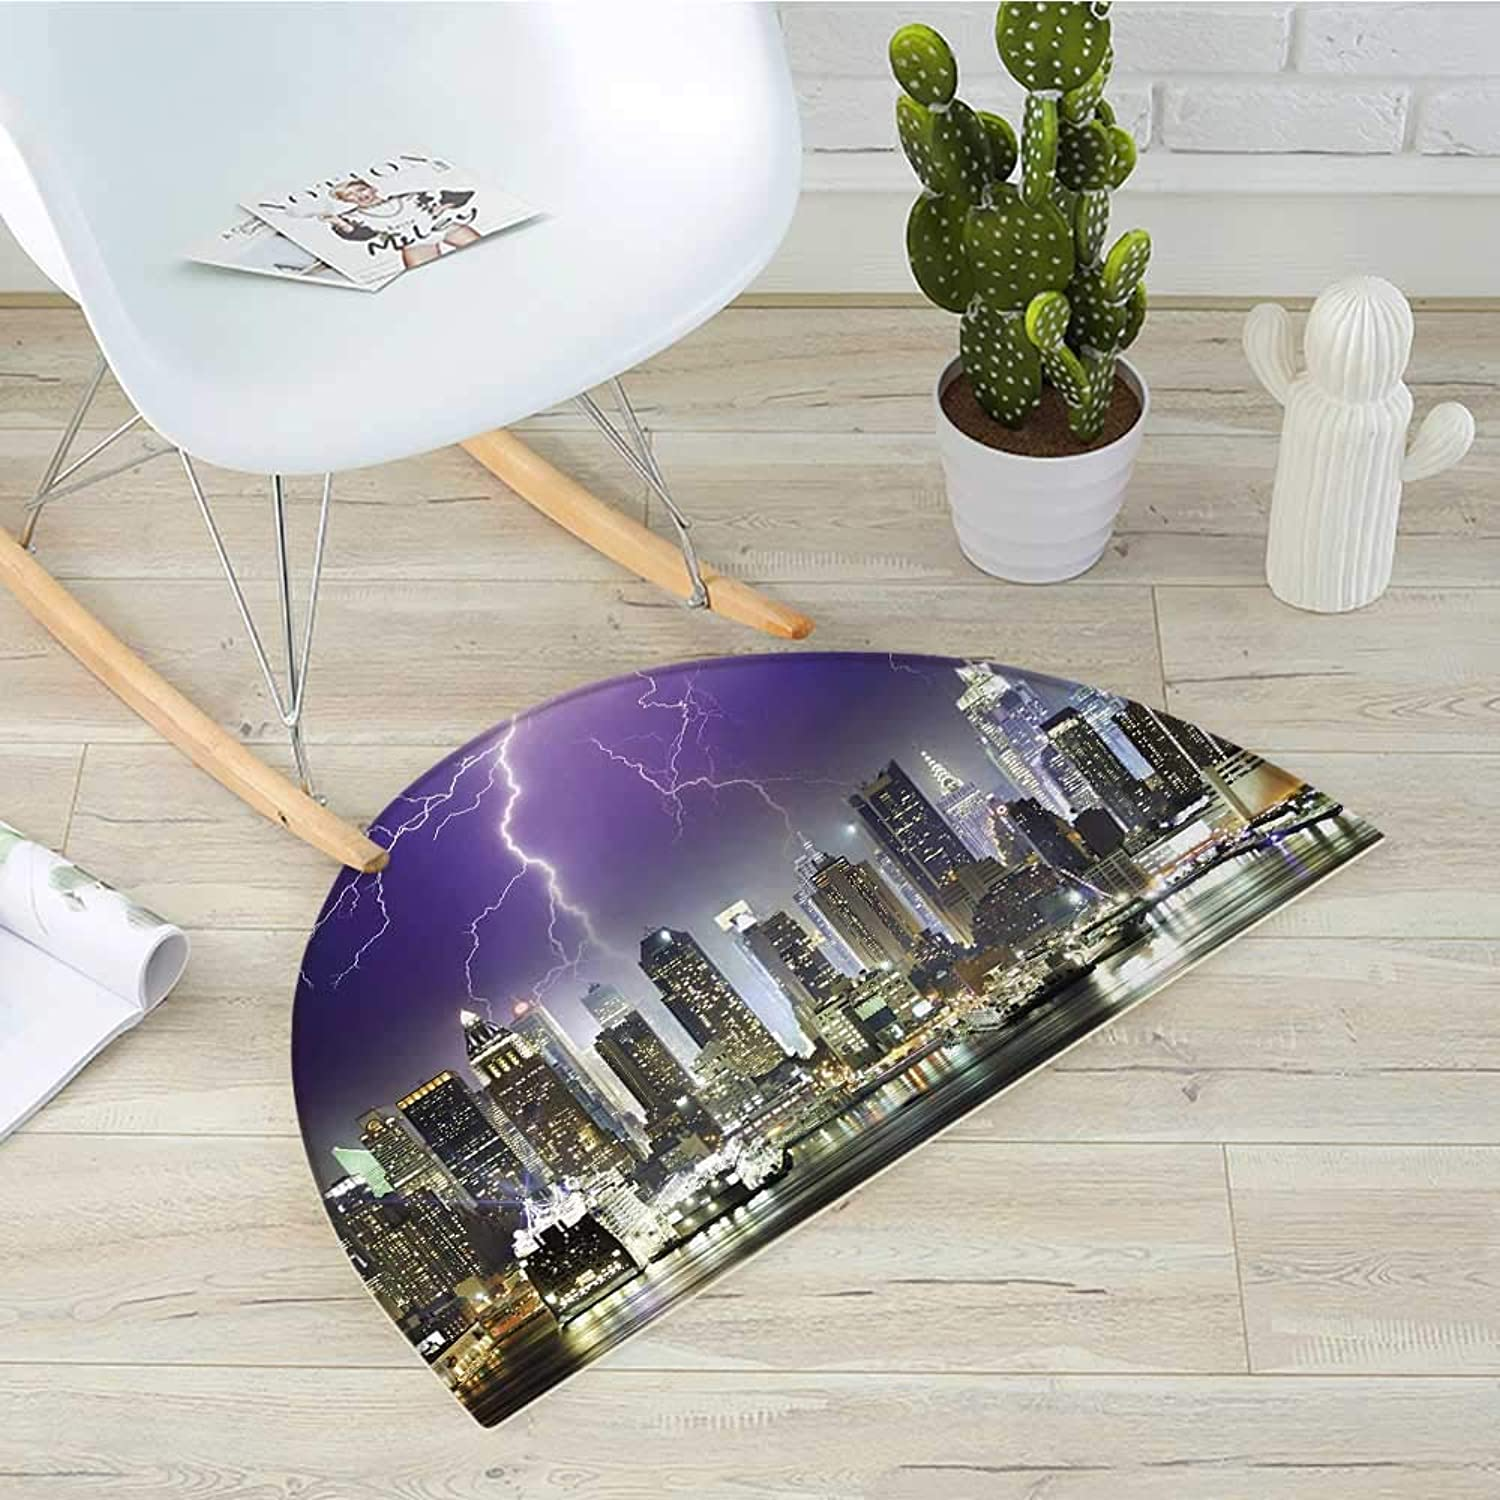 City Half Round Door mats Storm and Lightnings in Night York City Apocalyptic Dramatic Bathroom Mat H 35.4  xD 53.1  Indigo purplec Charcoal Grey